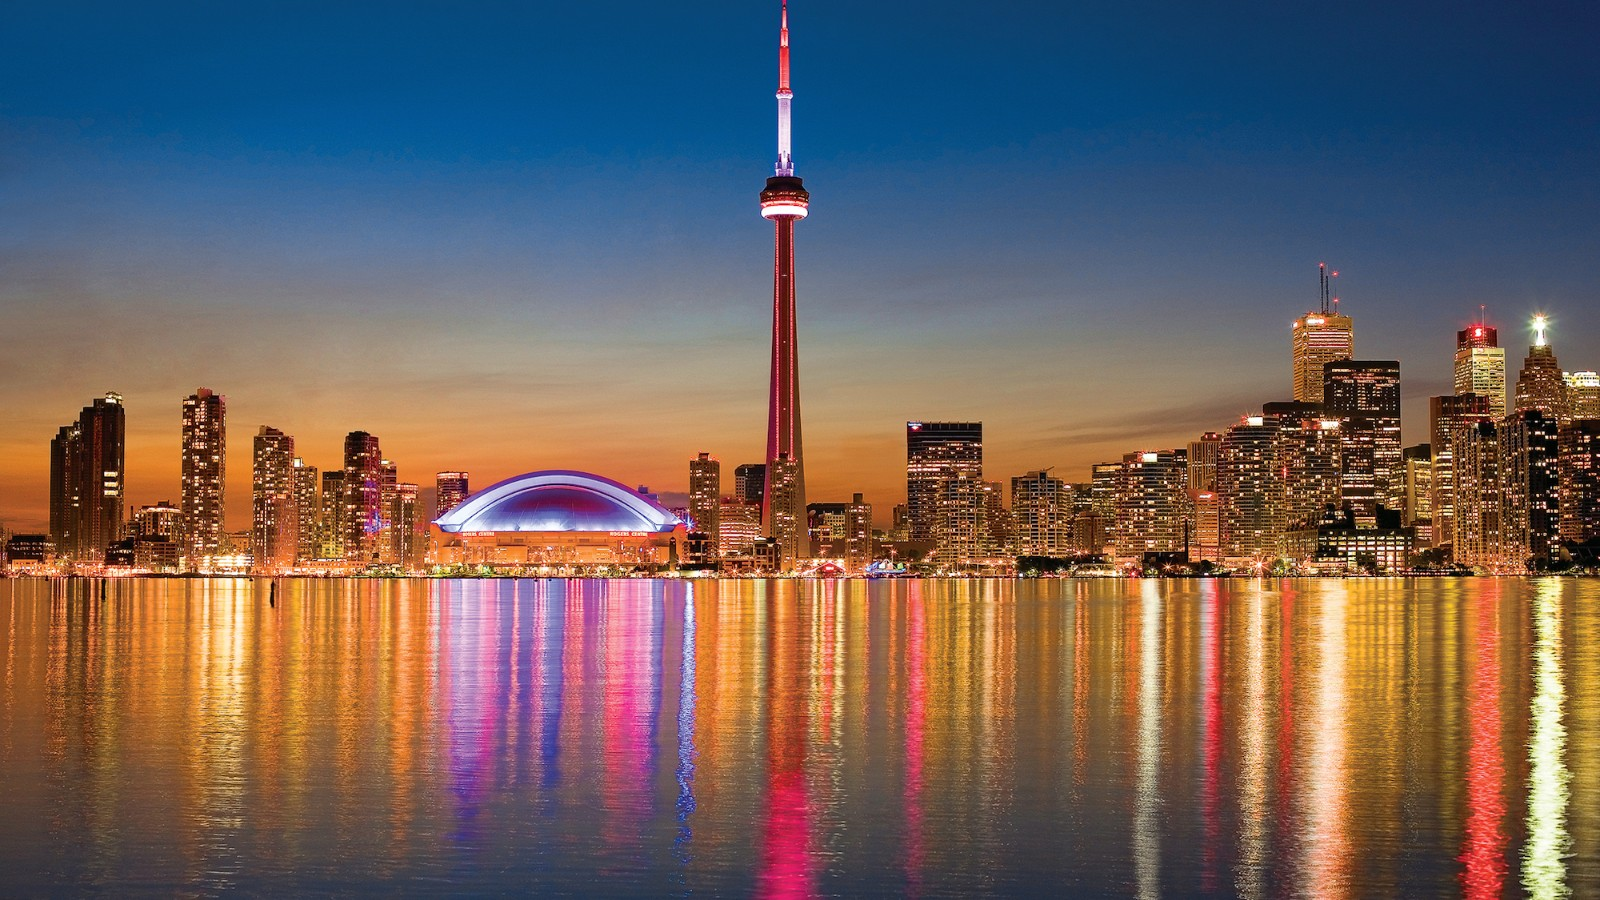 Canada photos 20 of the most beautiful places cnn travel Most beautiful cities in the us